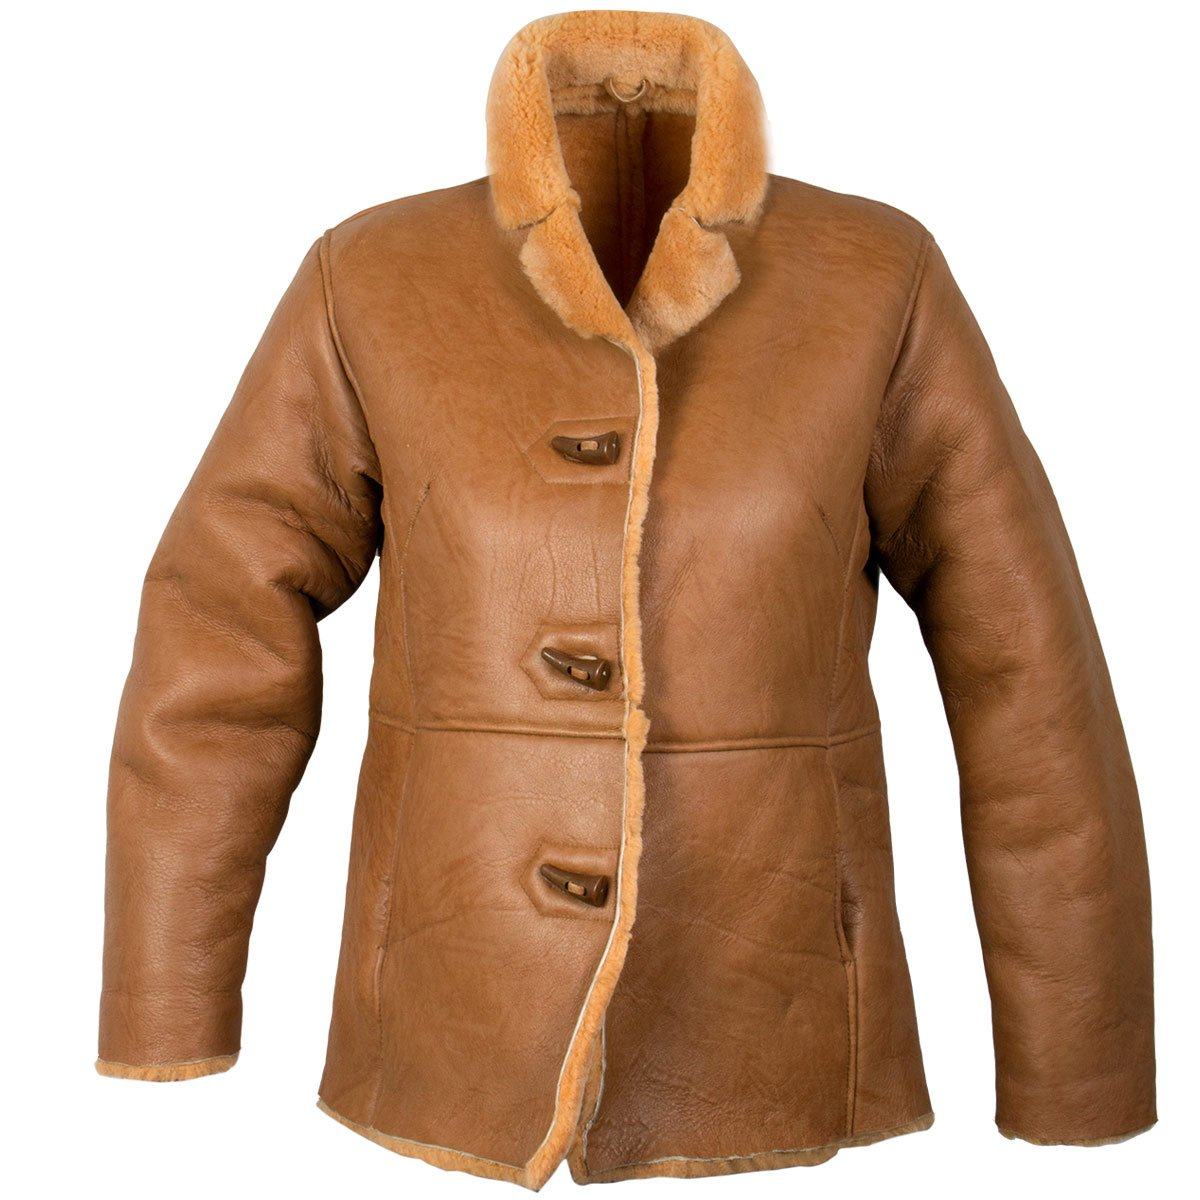 Ladies Lucky Leather 0021S Rusty Brown Color Short Shearling Coat - Large